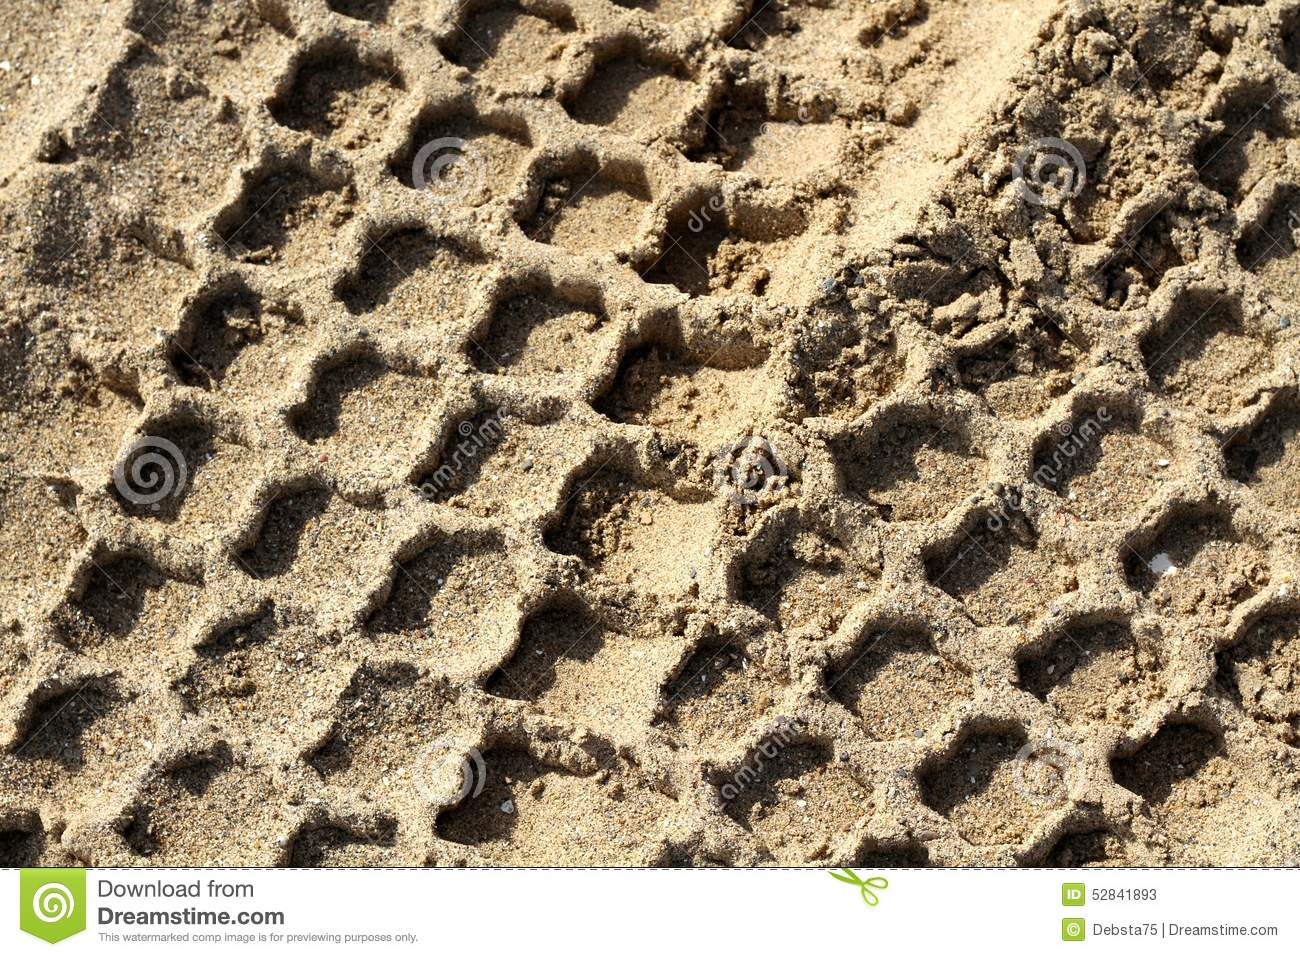 Tractor tracks in sand